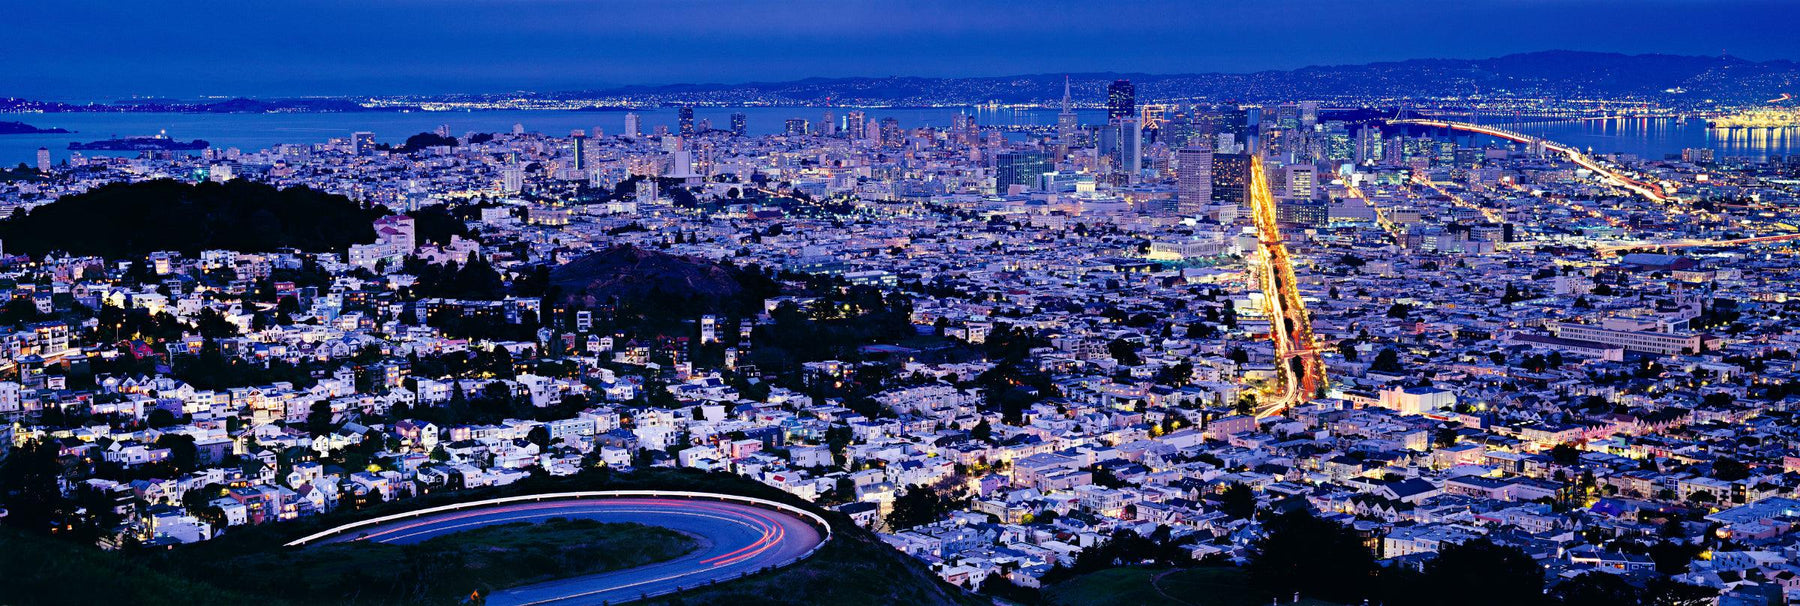 View from the hillside looking down at the lit up traffic and city of San Francisco at night